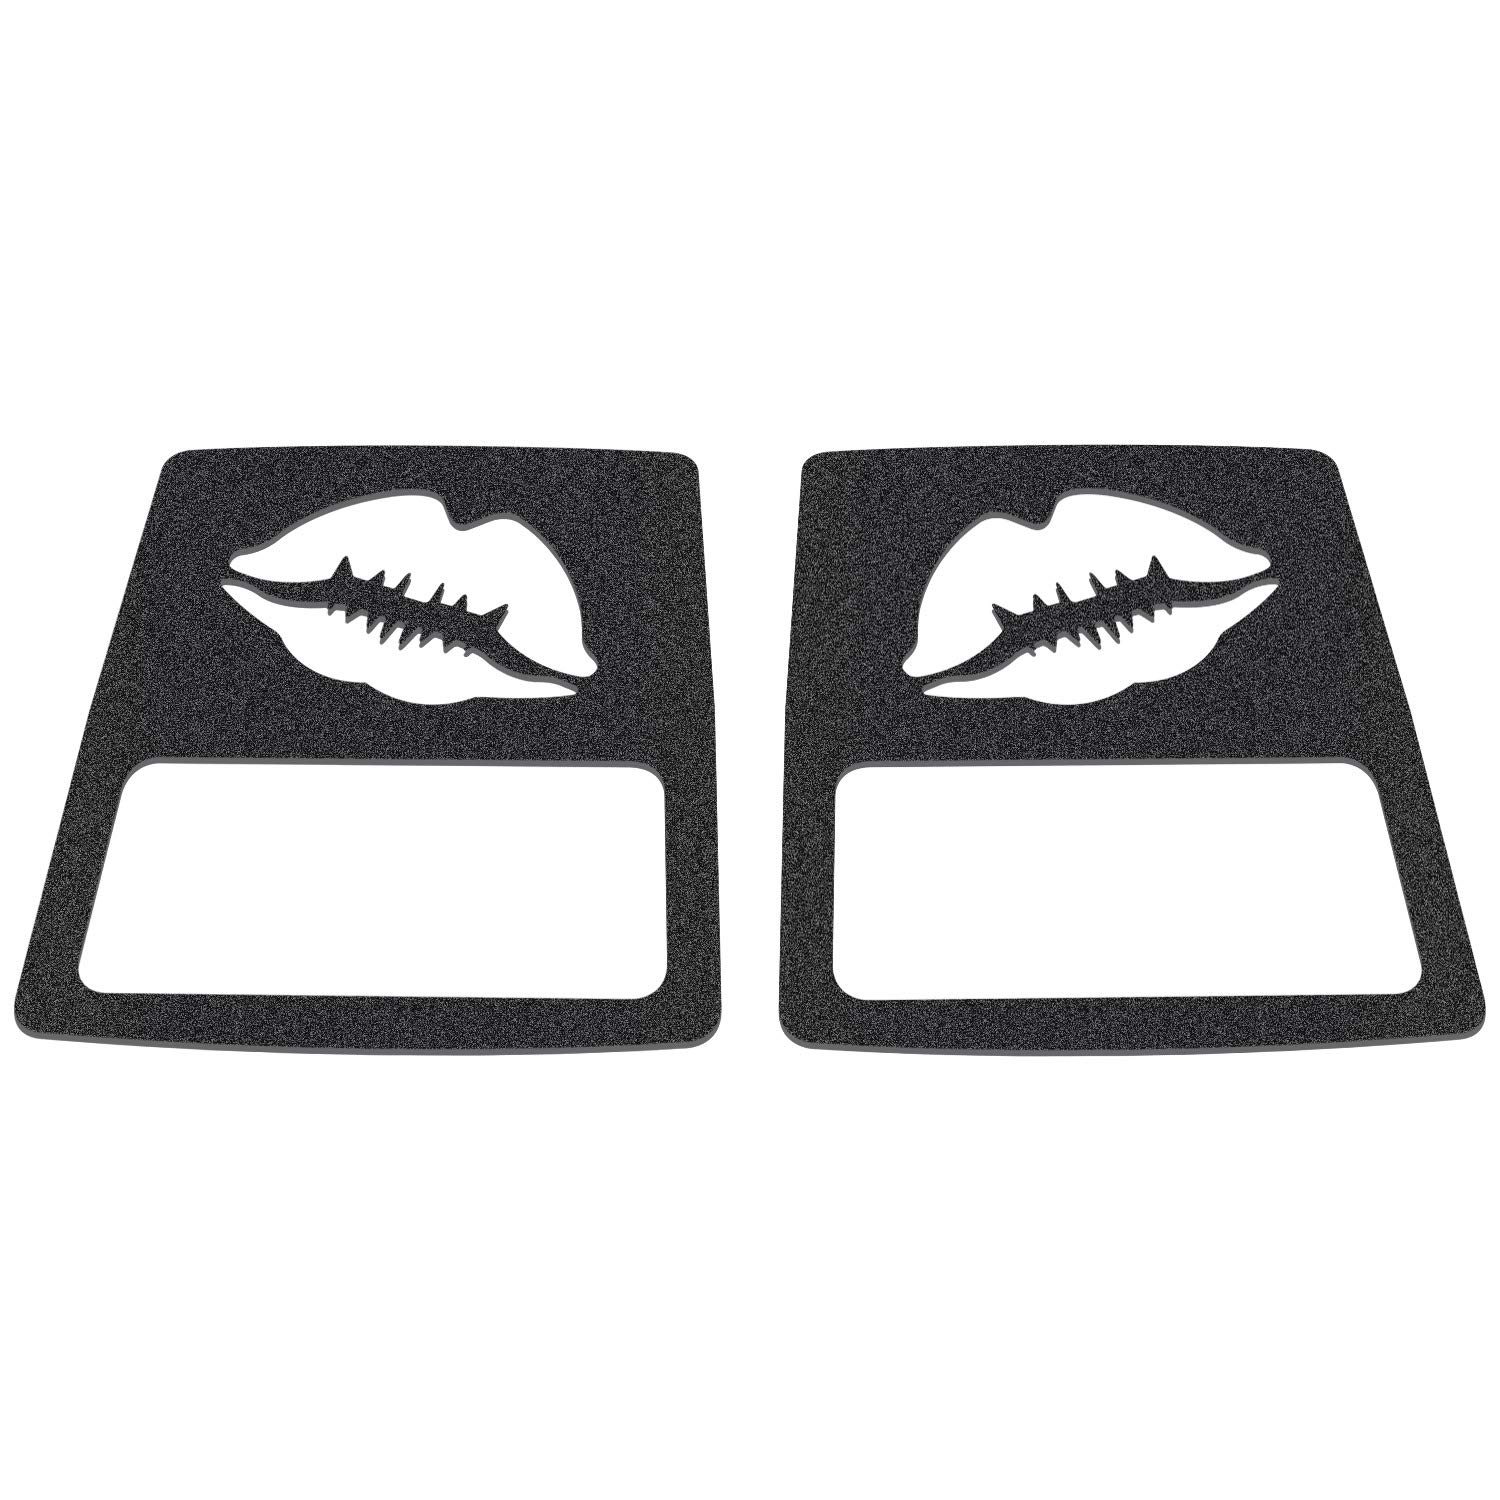 Pair Yoursme Tail Light Covers Matte Black Lip Rear Taillight Lamp Guard Protector for 2018 Jeep Wrangler JL Sport//Sports 5559058318 Lip Style